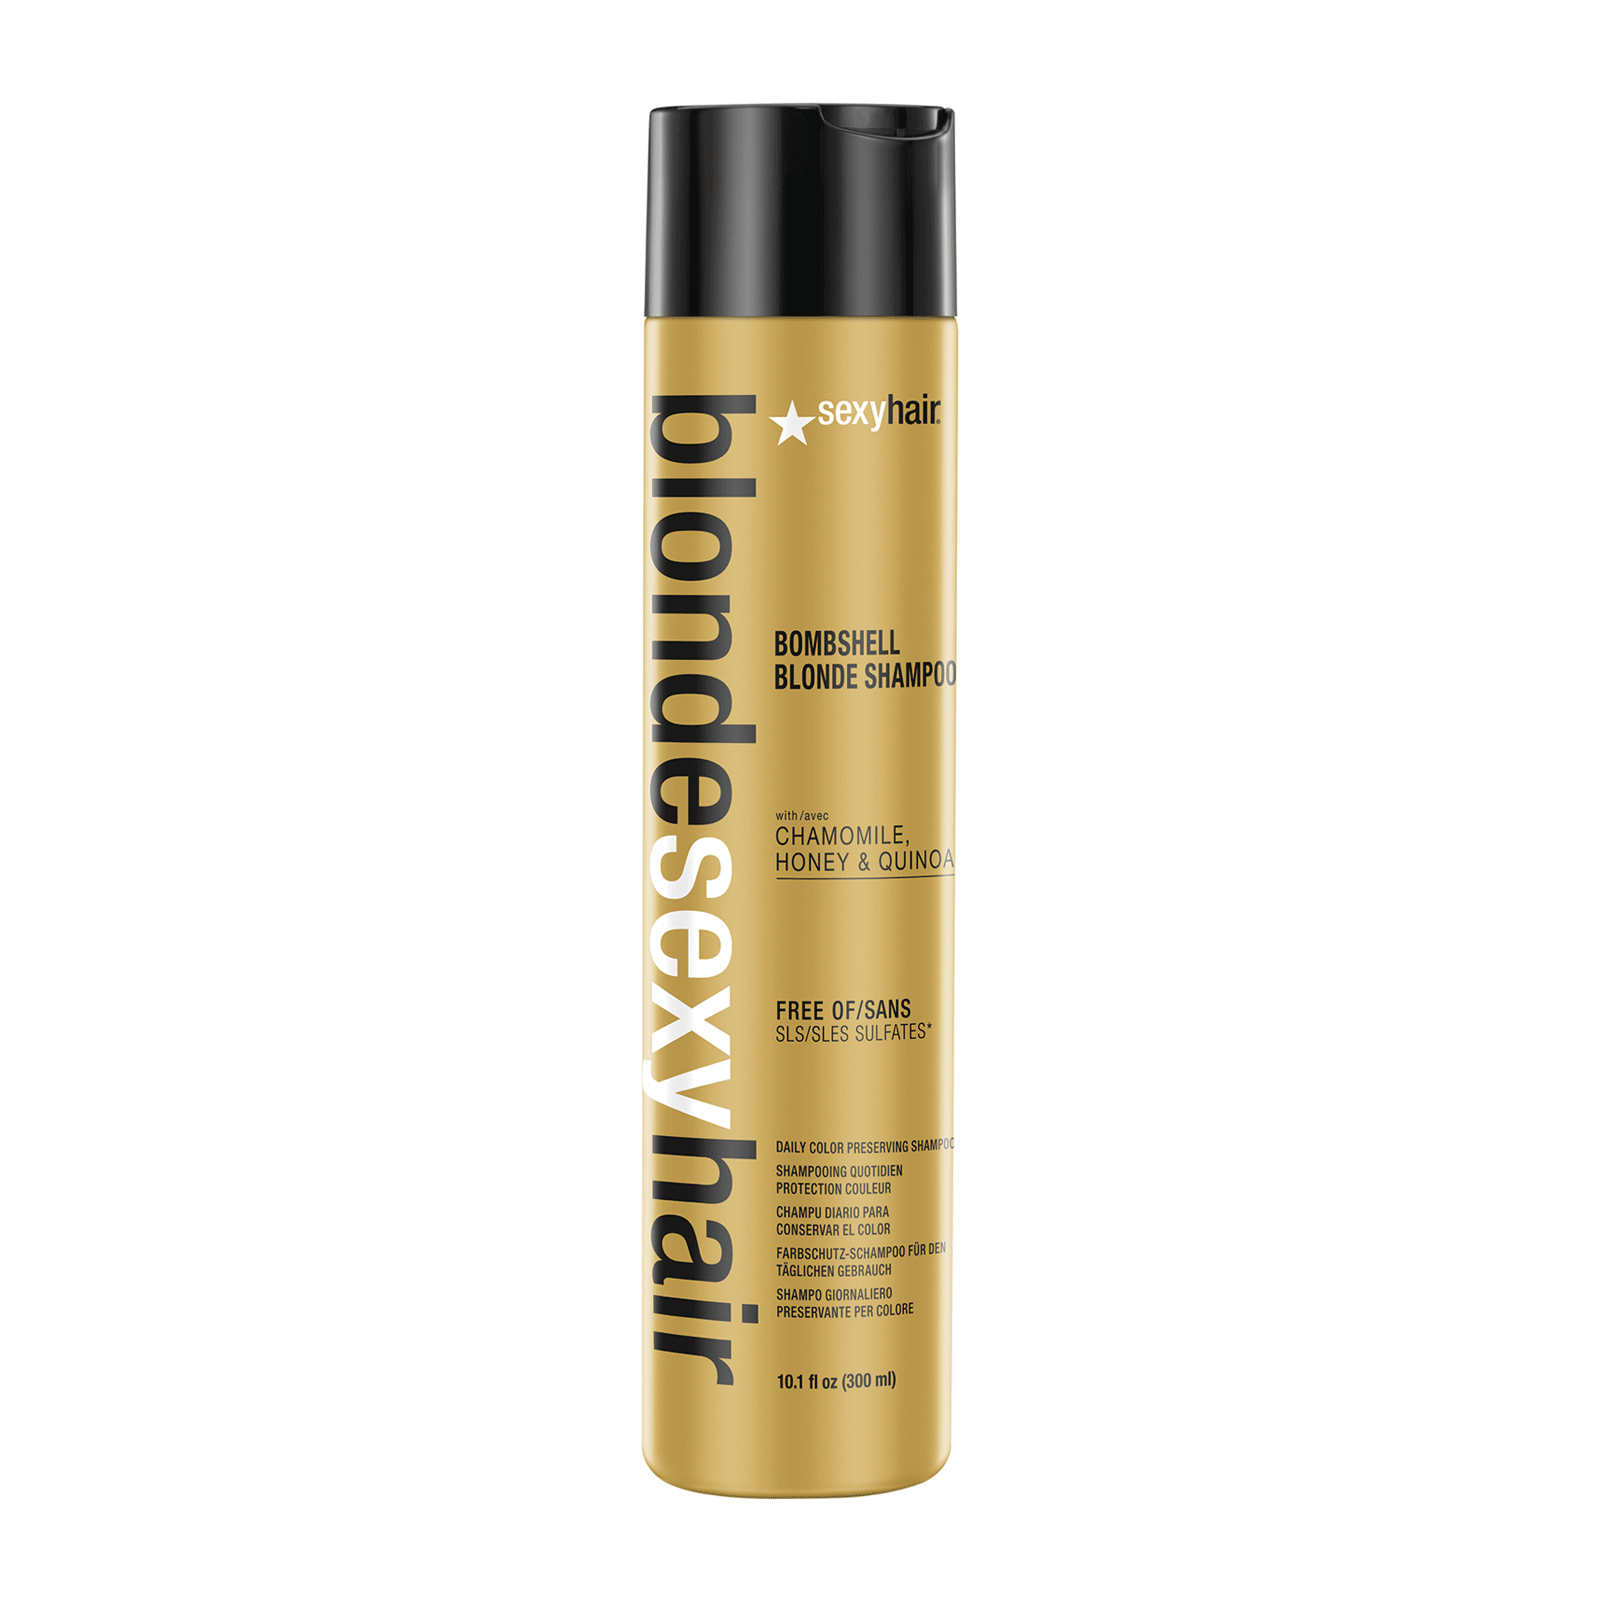 Blonde Sexy Hair - Bombshell Blonde Shampoo